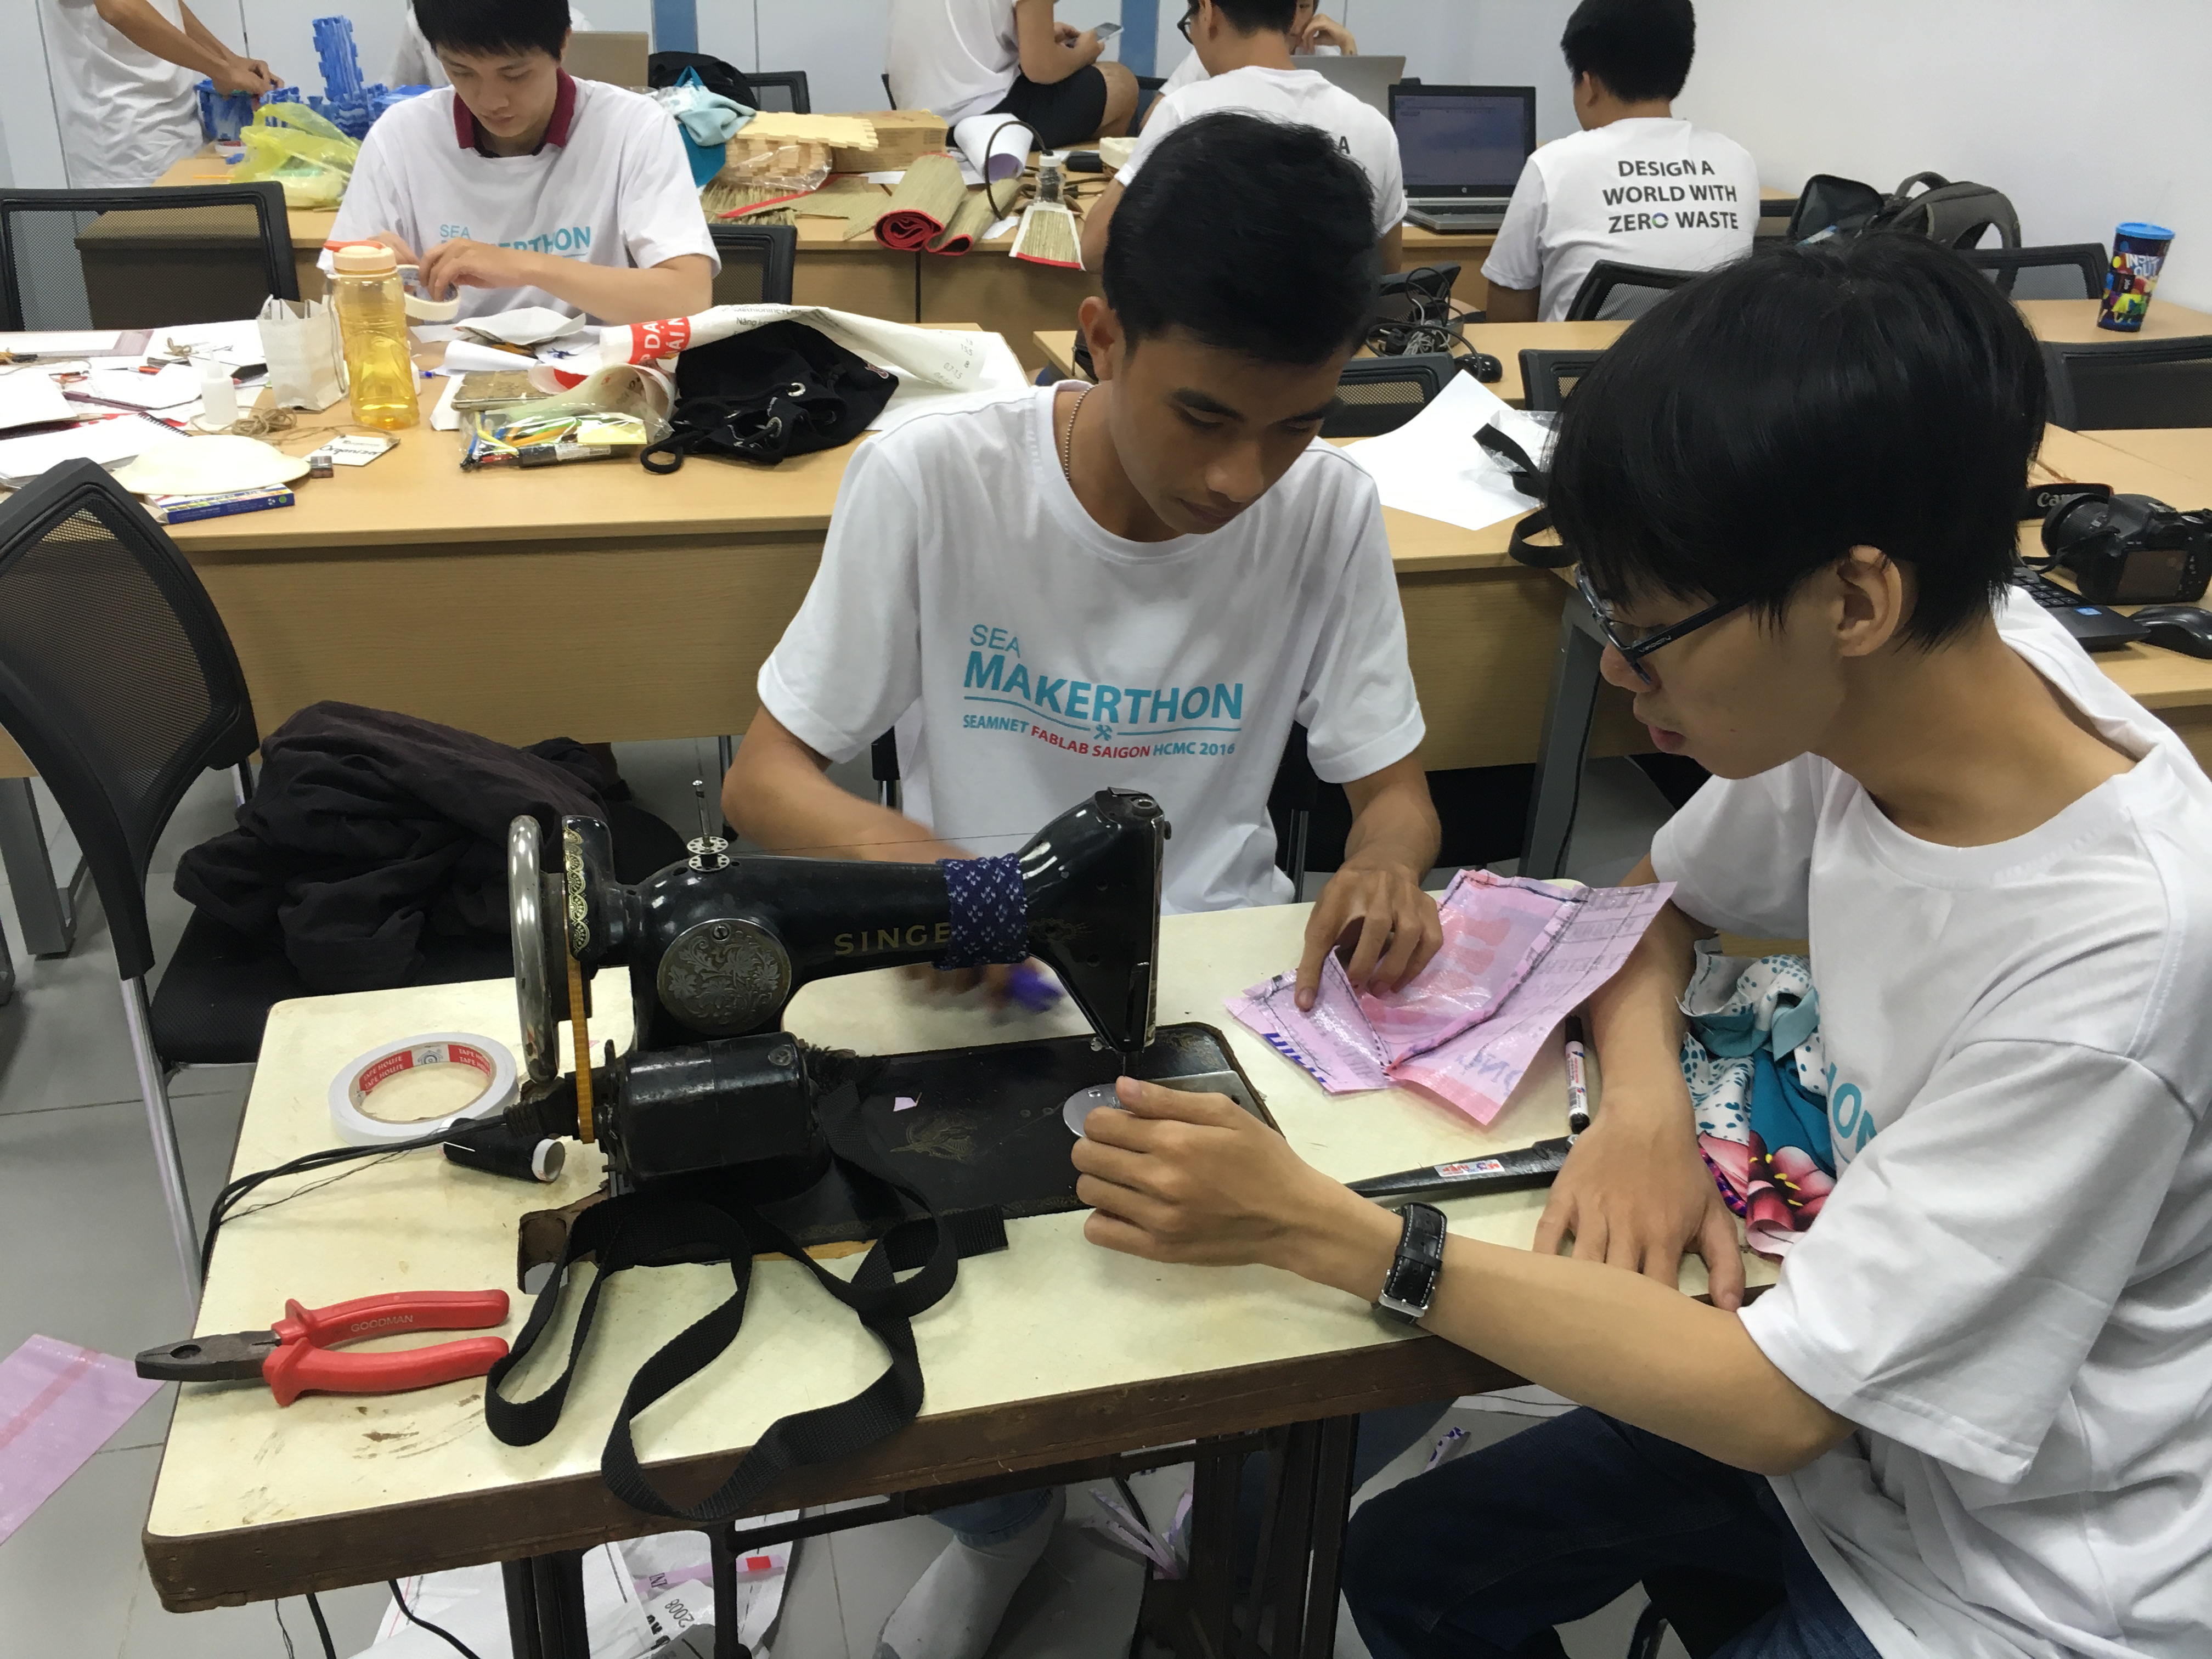 Summer-Long Southeast Asia Makerthon Tackles Sustainability Challenges